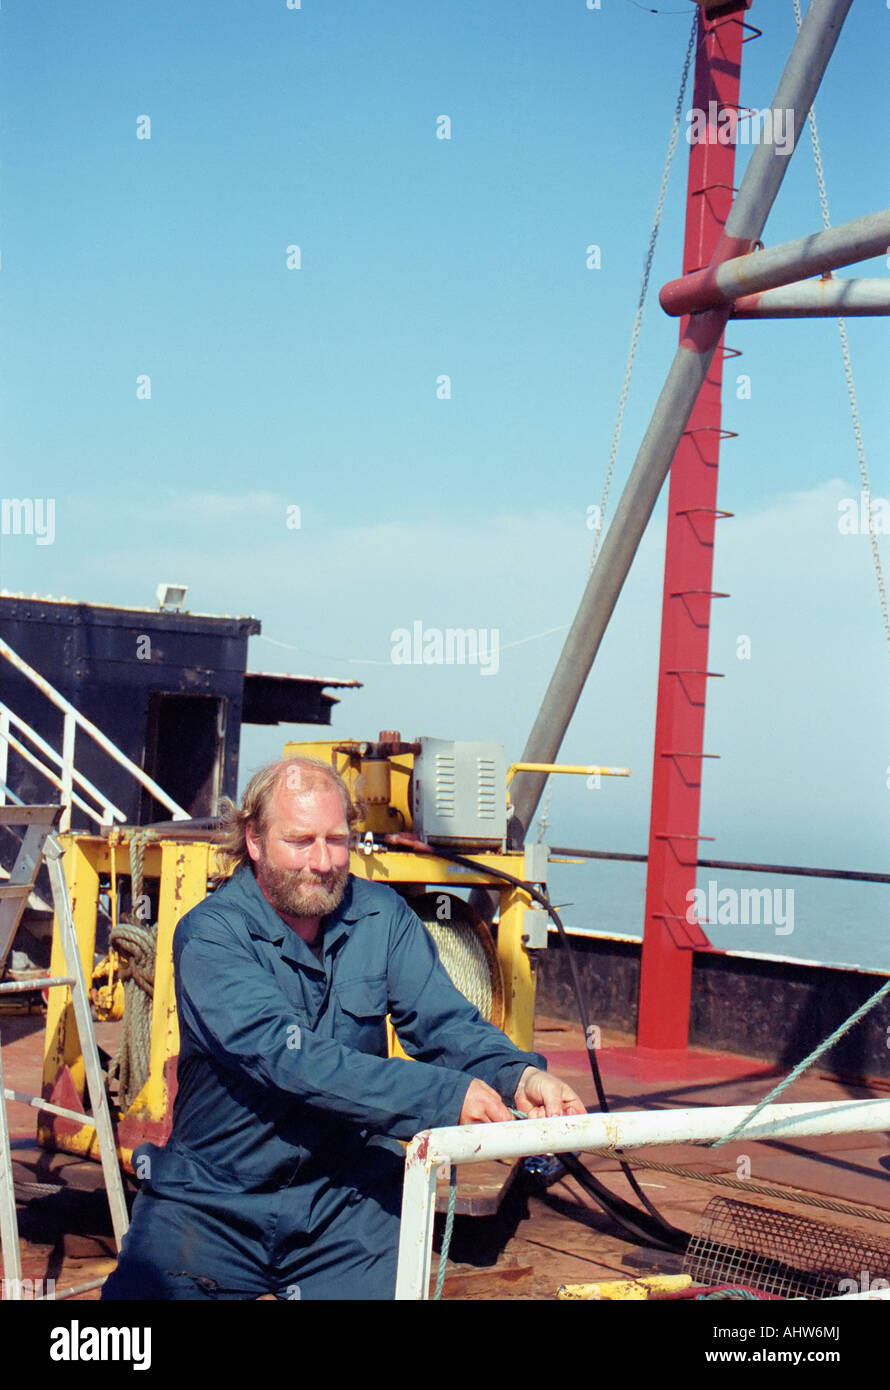 A security guard at the Principality of Sealand operates the winch that pulls visitors on to the tower. - Stock Image